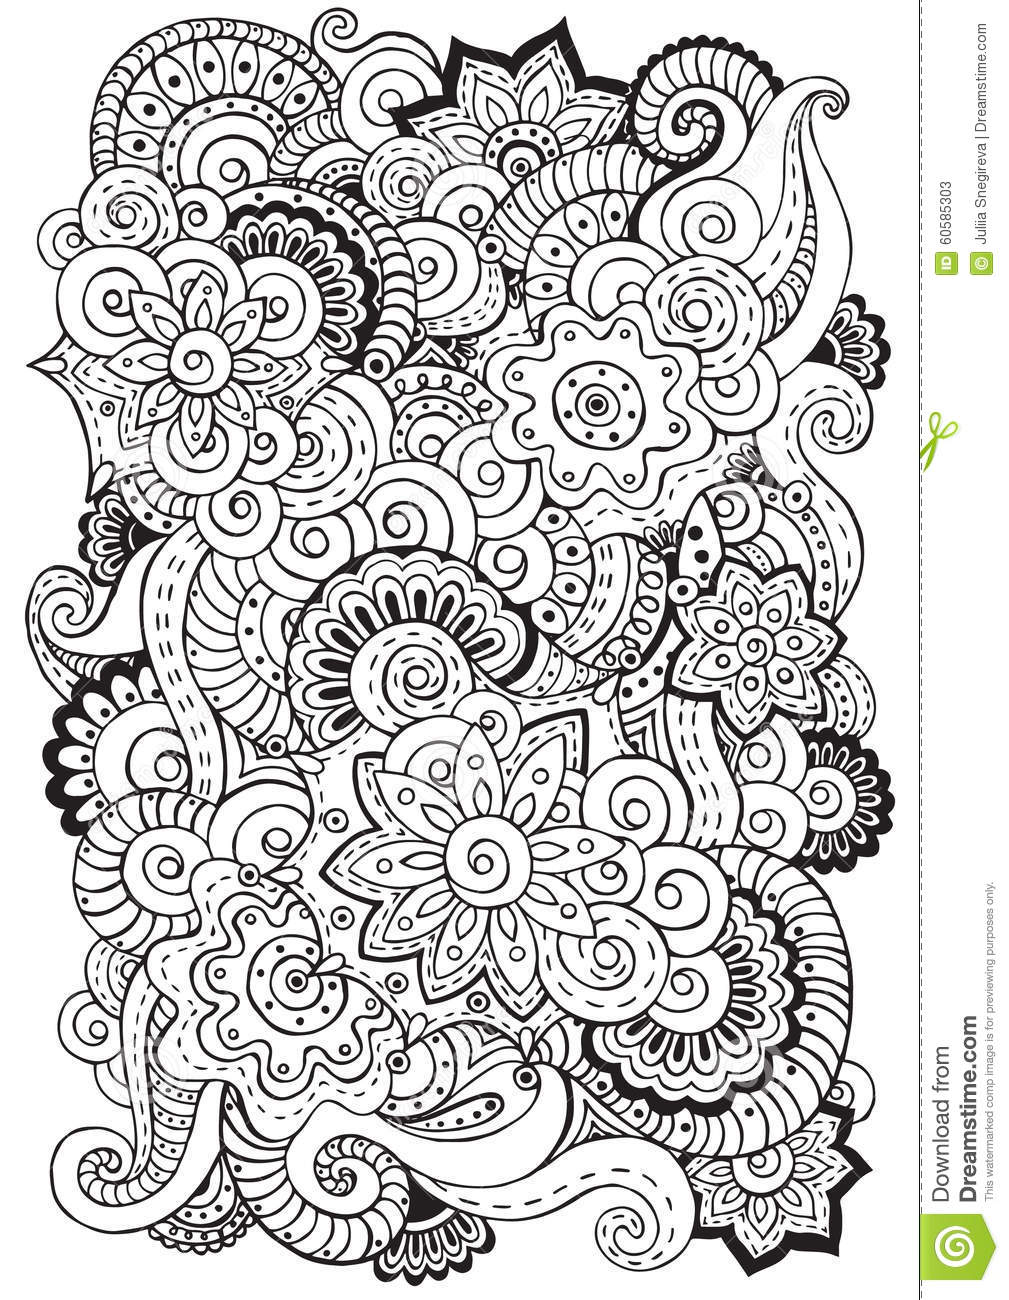 Doodle Background In Vector With Flowers Paisley Black